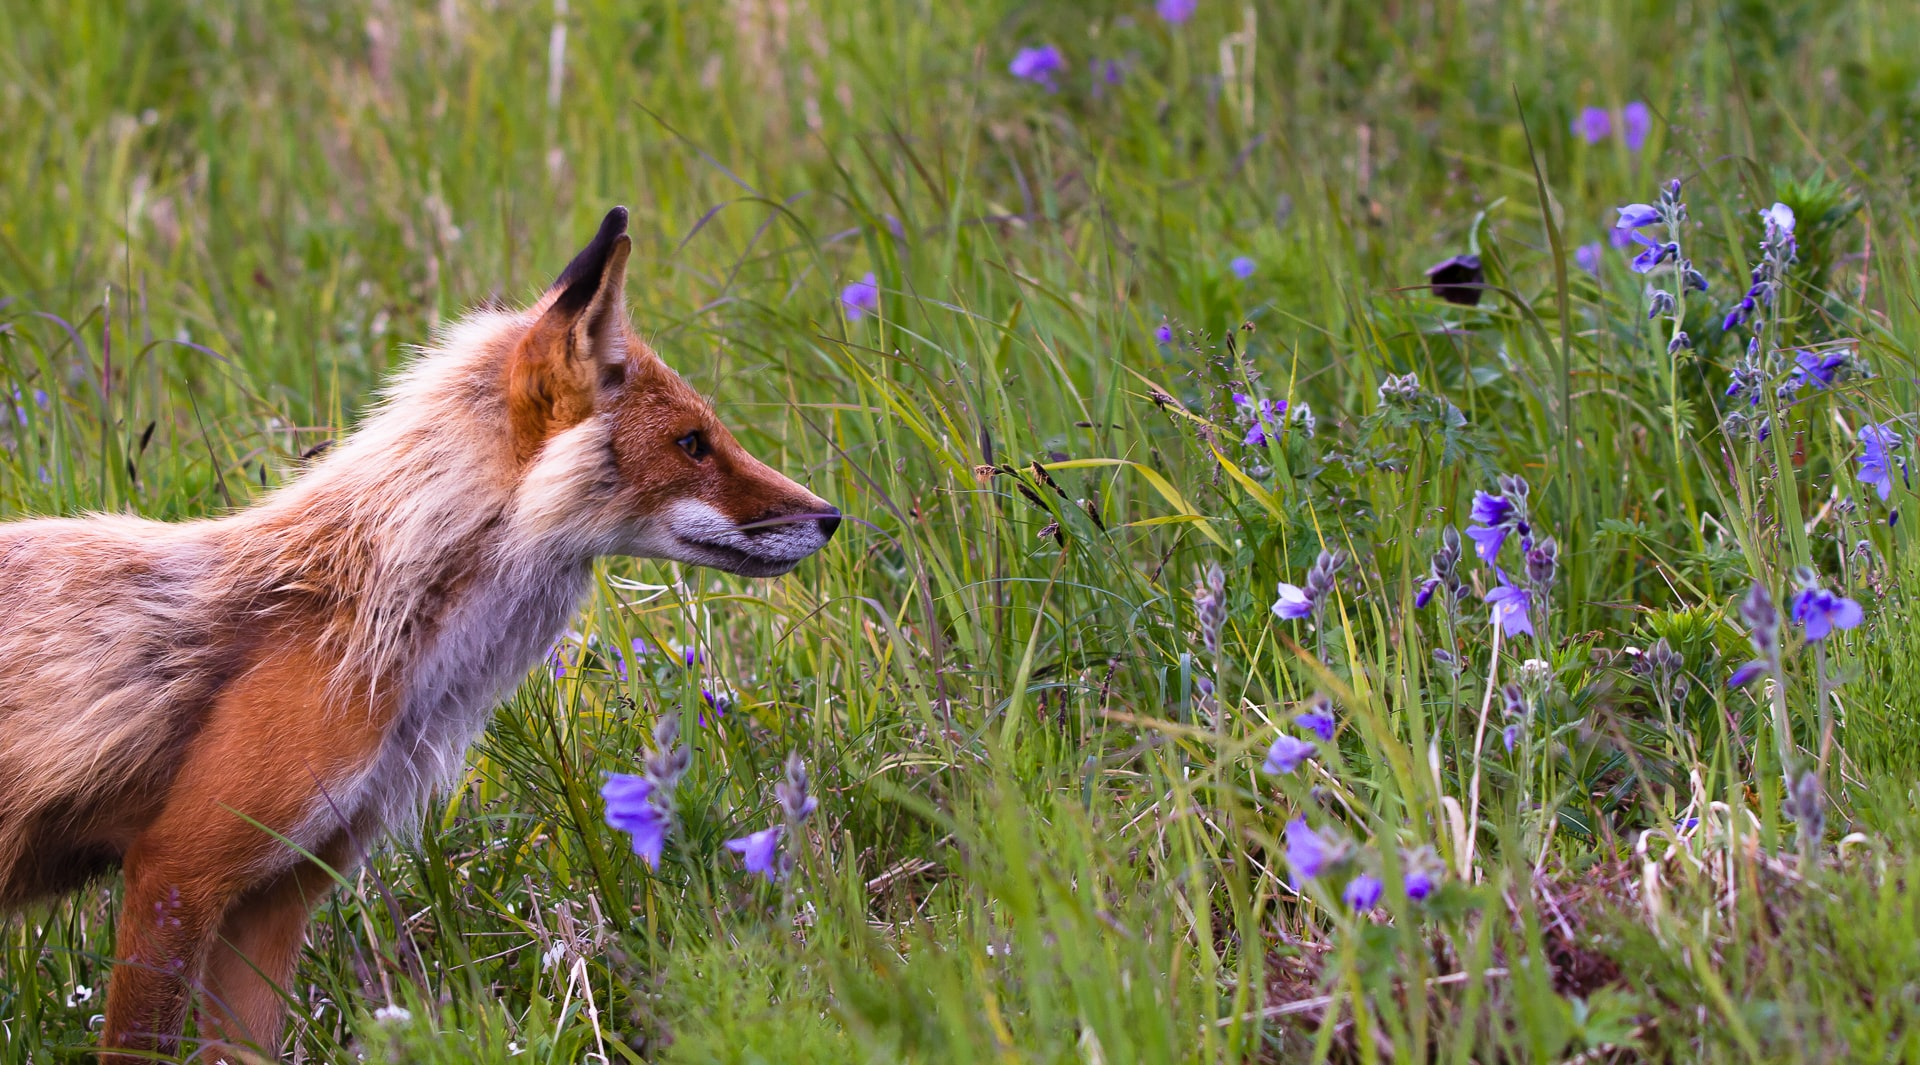 A red fox in a flower meadow